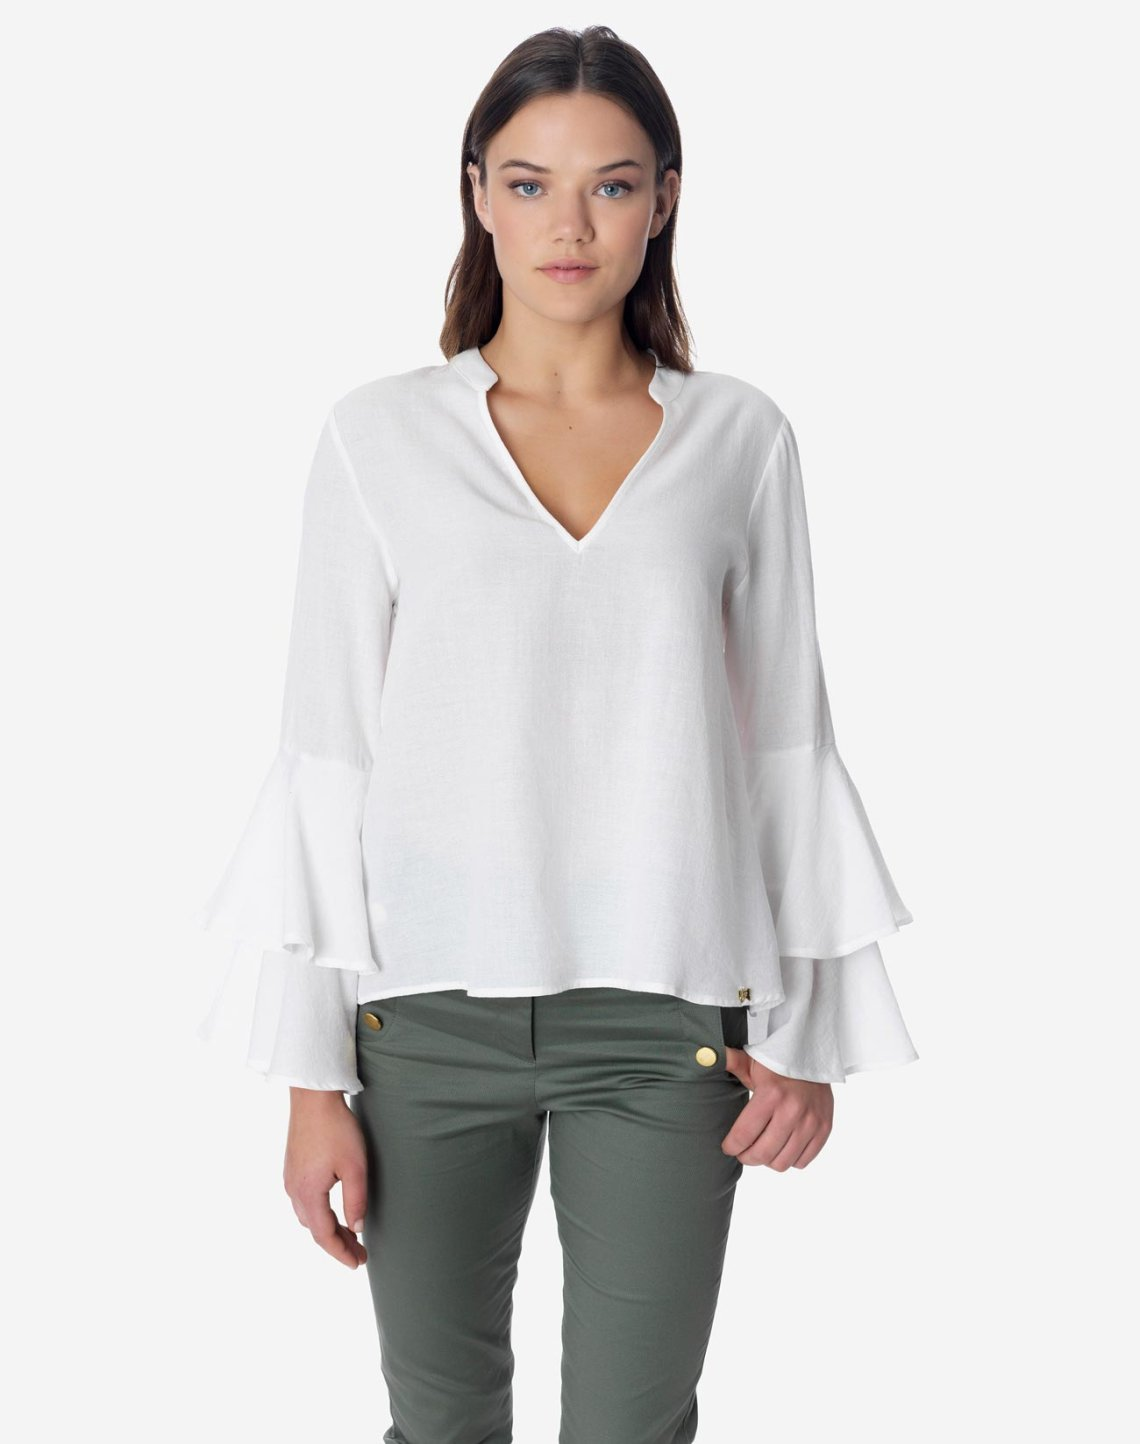 Top with double ruffles on the sleeves